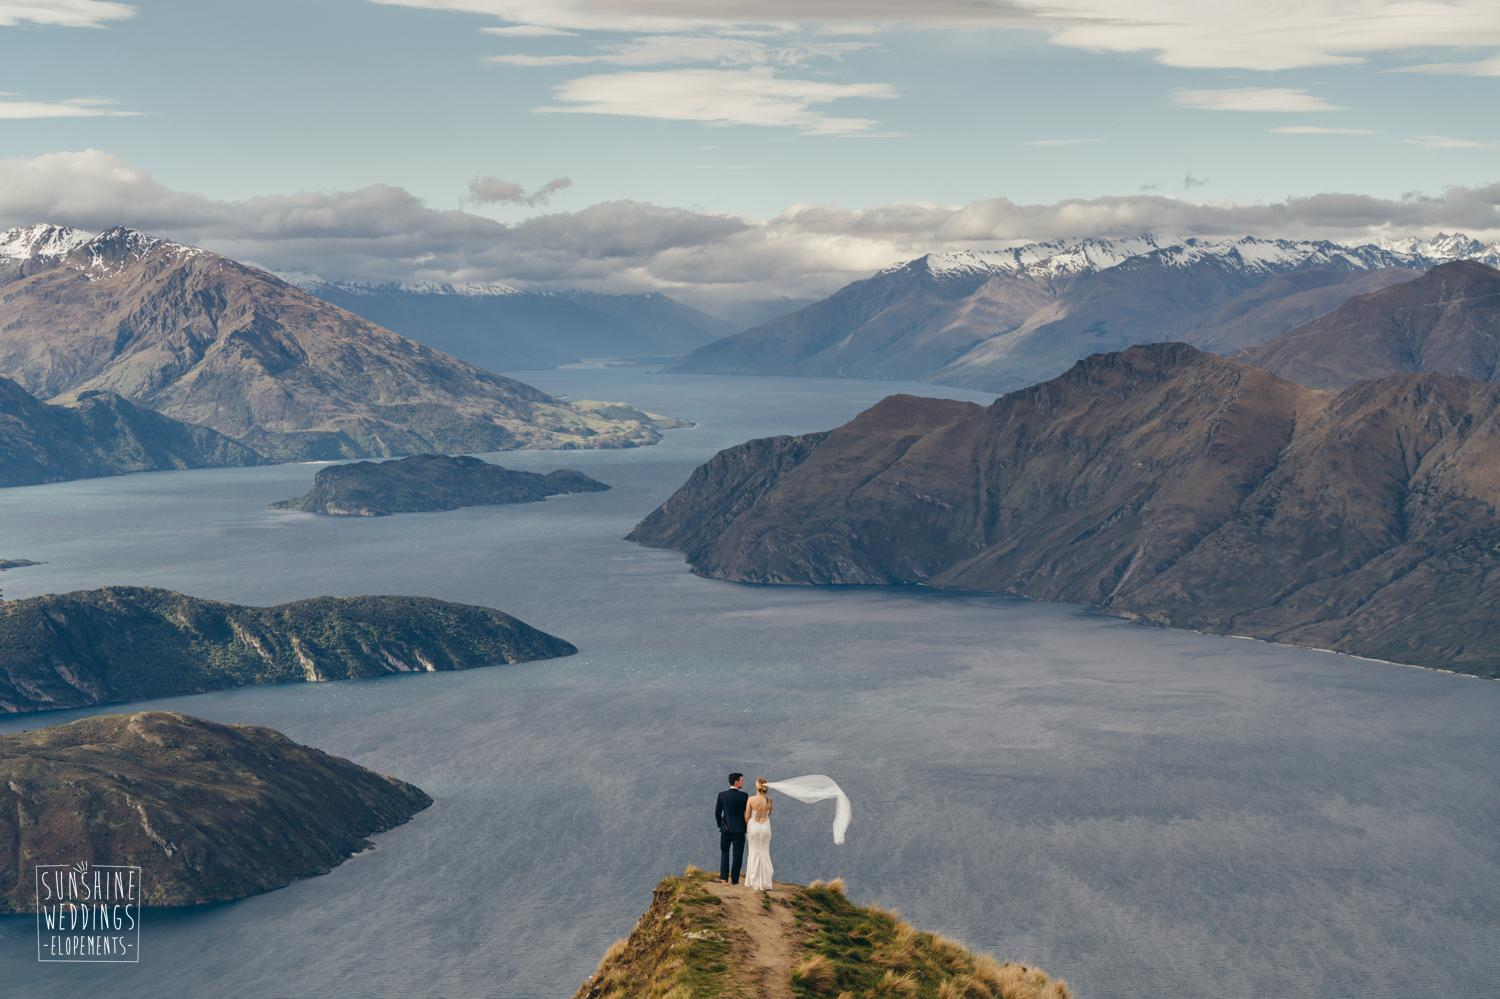 Coromandel Peak wedding, Lake Wanaka, spectacular wedding photography, mountain wedding locations, mount roy wedding